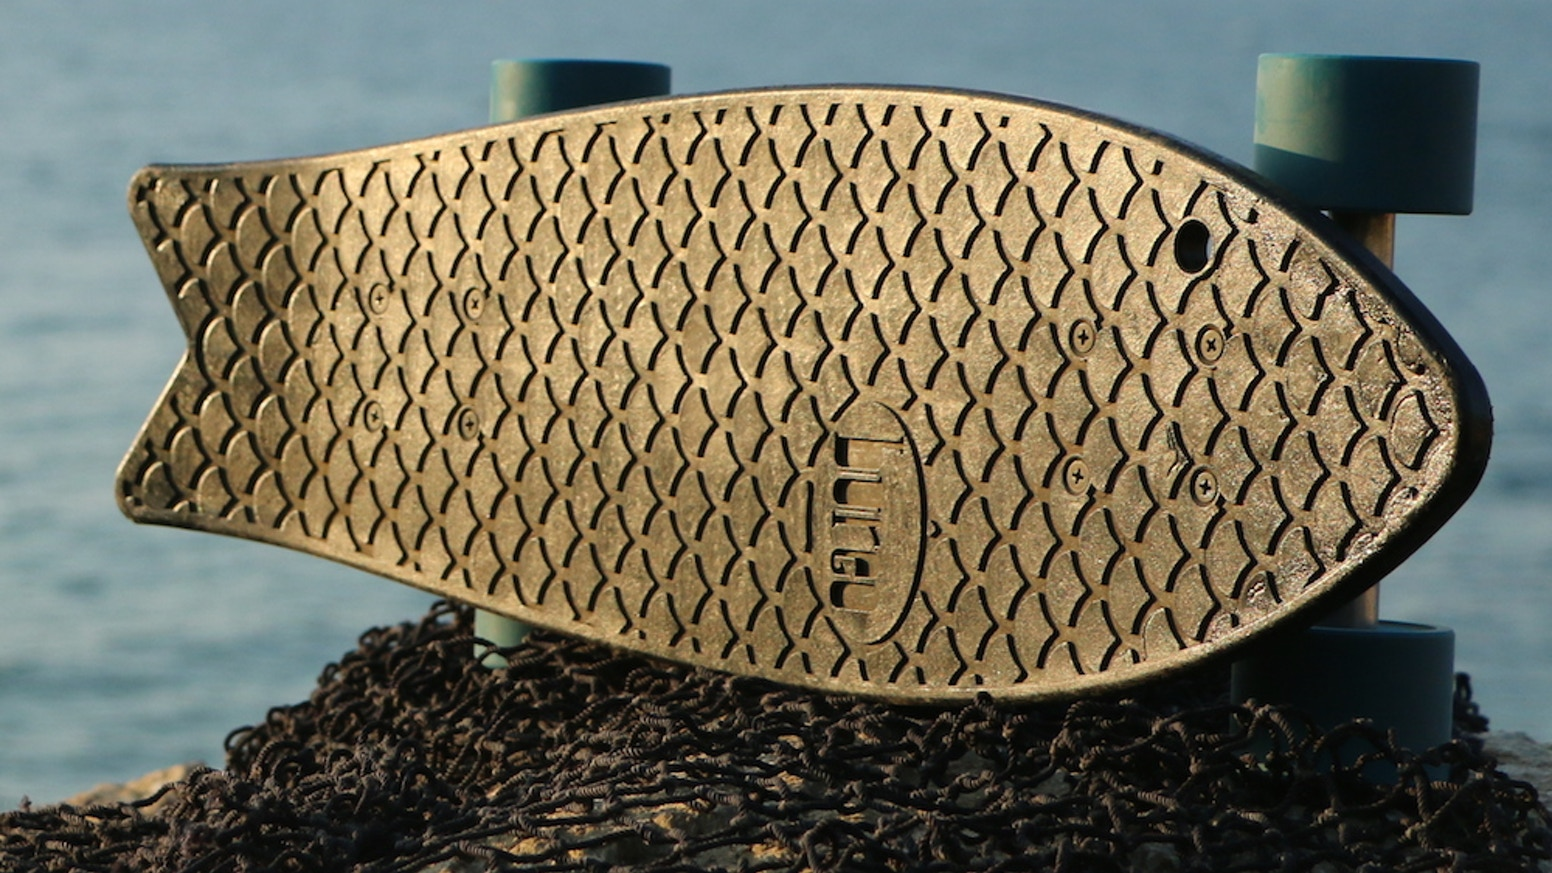 The Minnow: The first skateboard deck made out of recycled fishnets collected along the coast of Chile. Make waves!